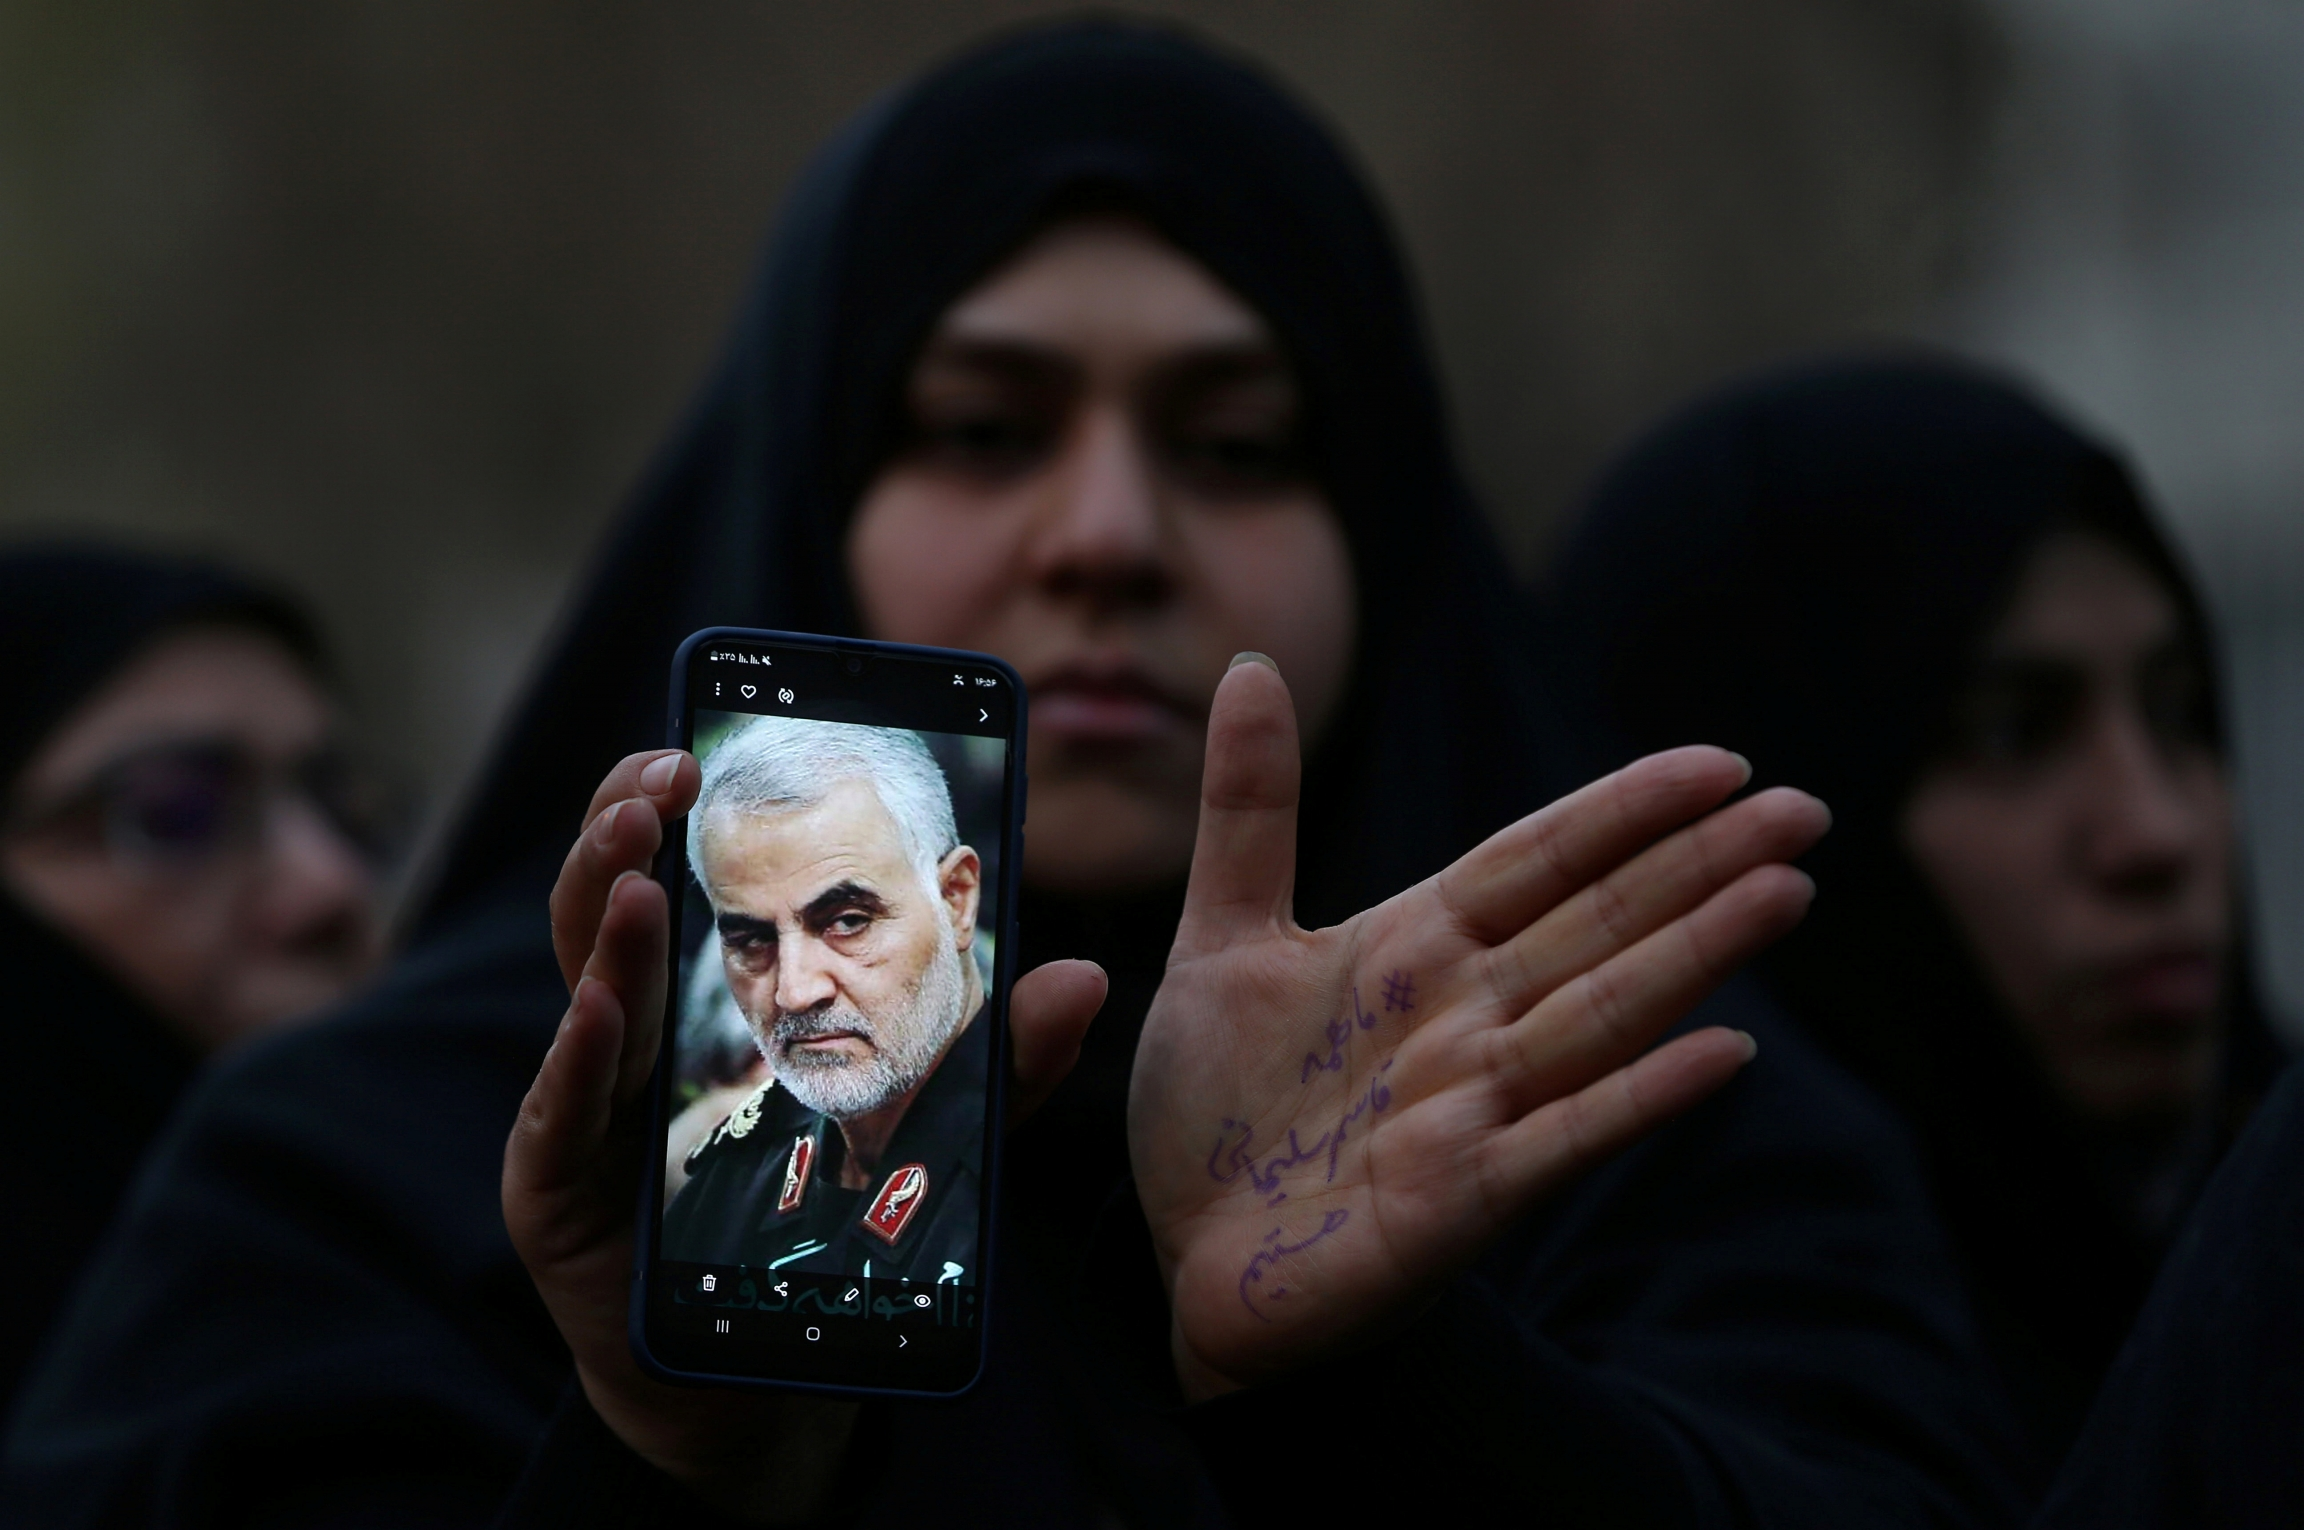 A woman wearing an abaya holds a cellphone with the photo of an Iranian military commander.